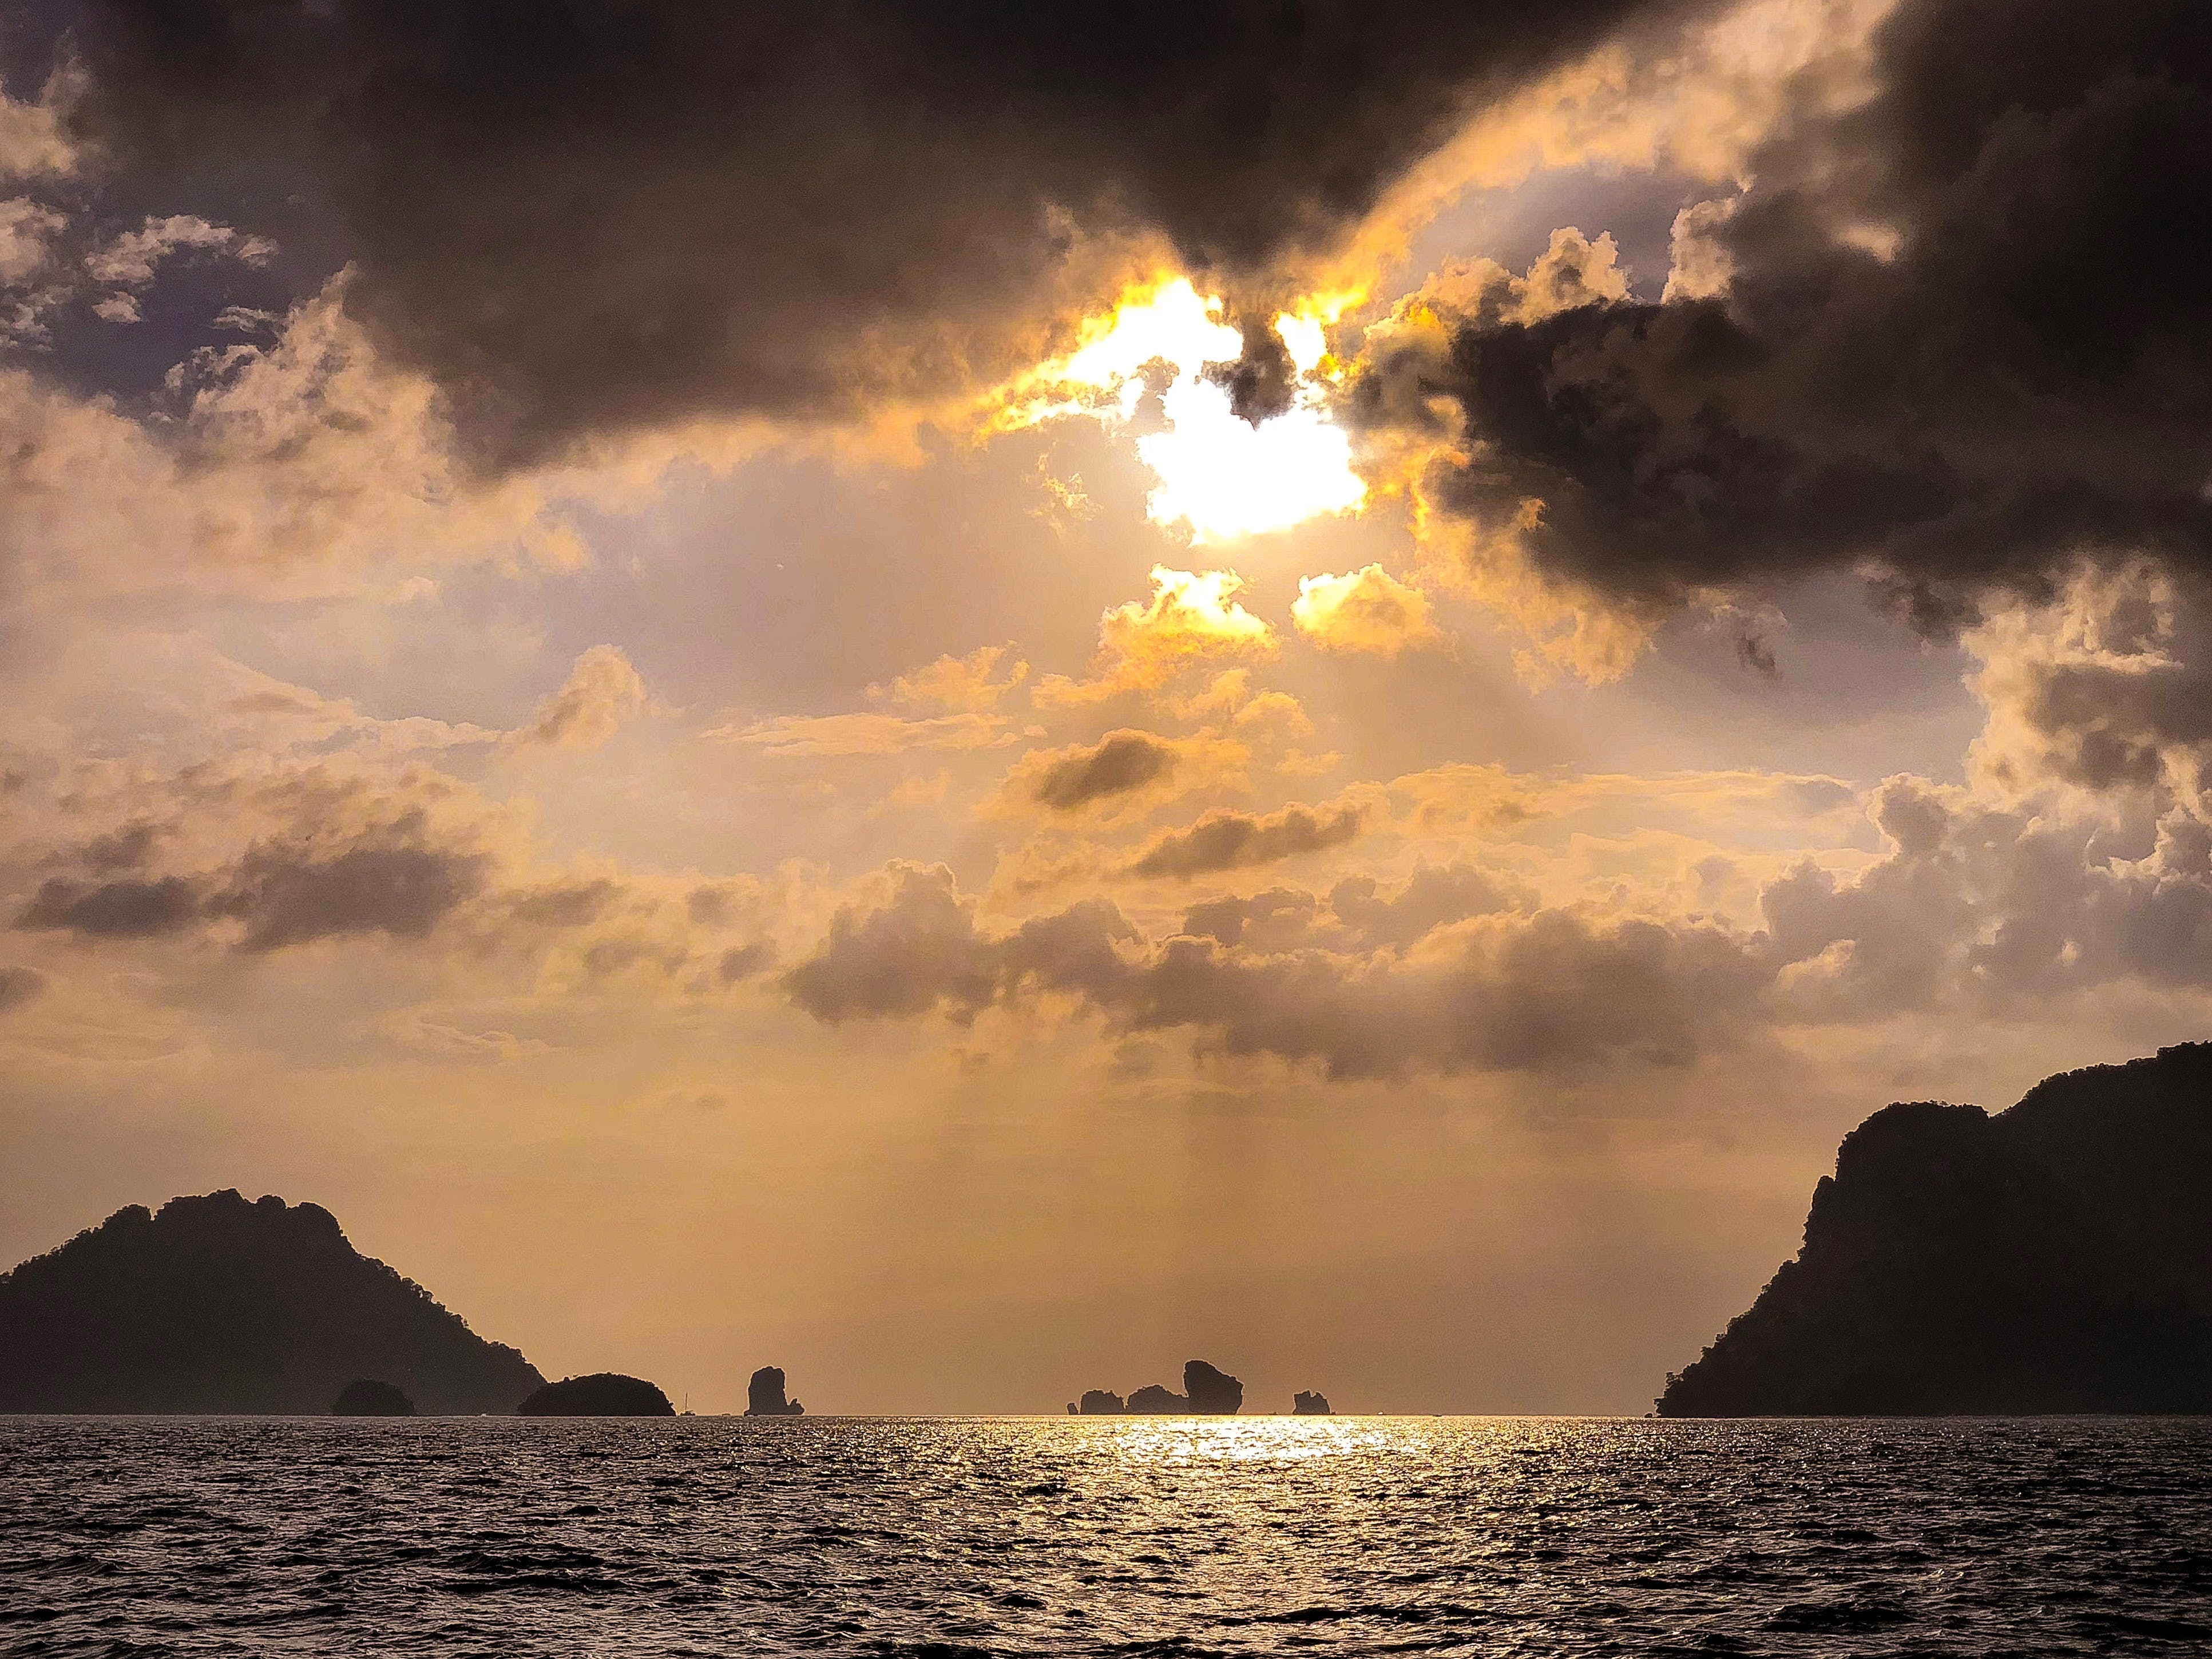 Sun Rays over Sea With Islands